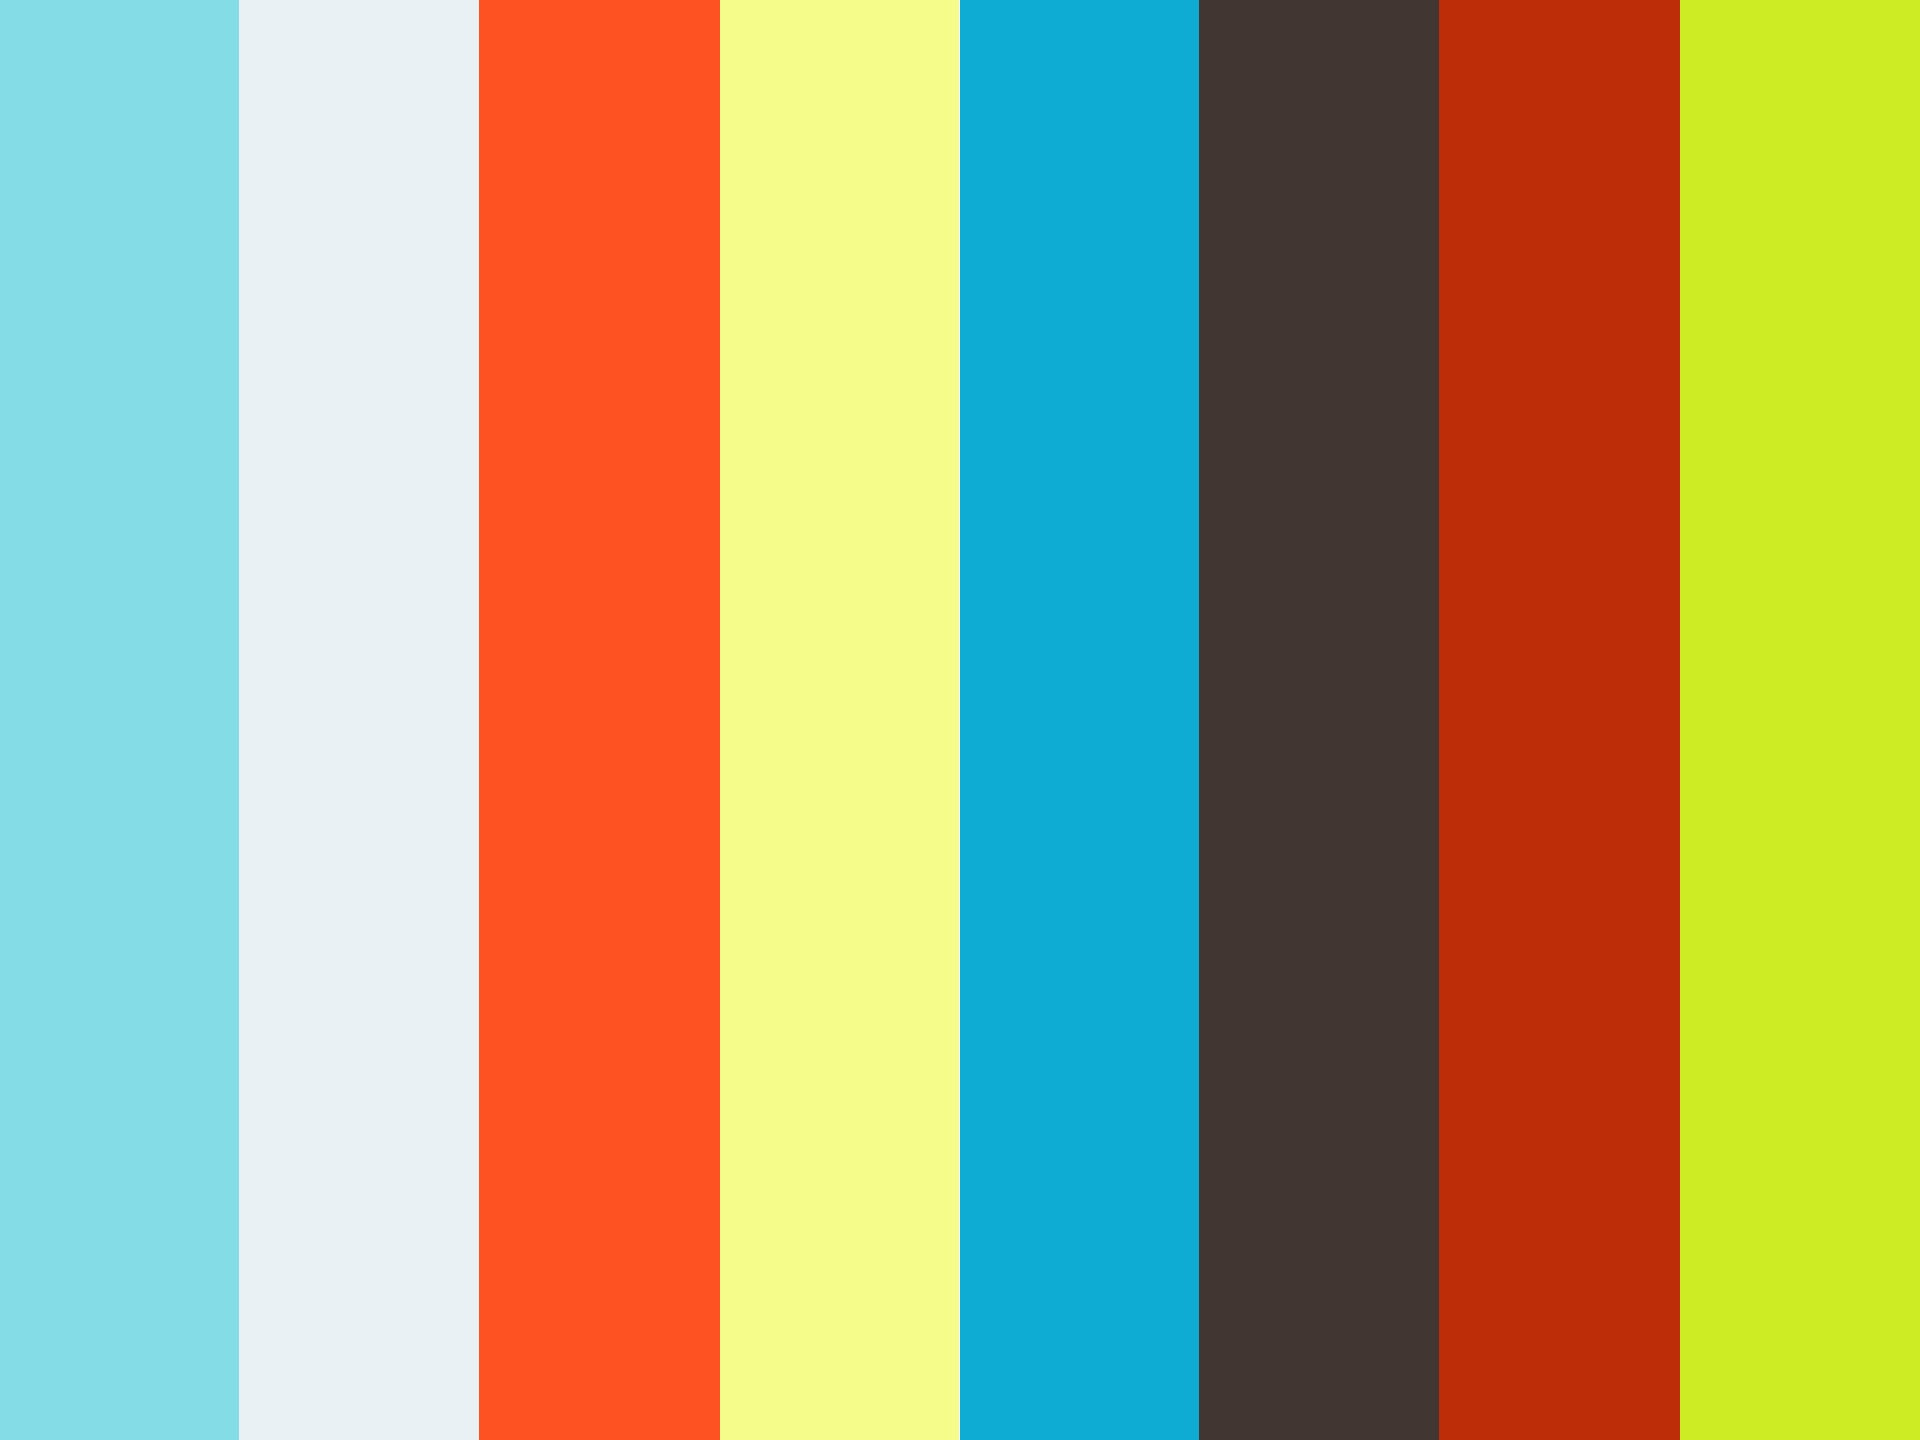 Laparoscopic TME: Establishing and Maintaining the Holy Planes 2010